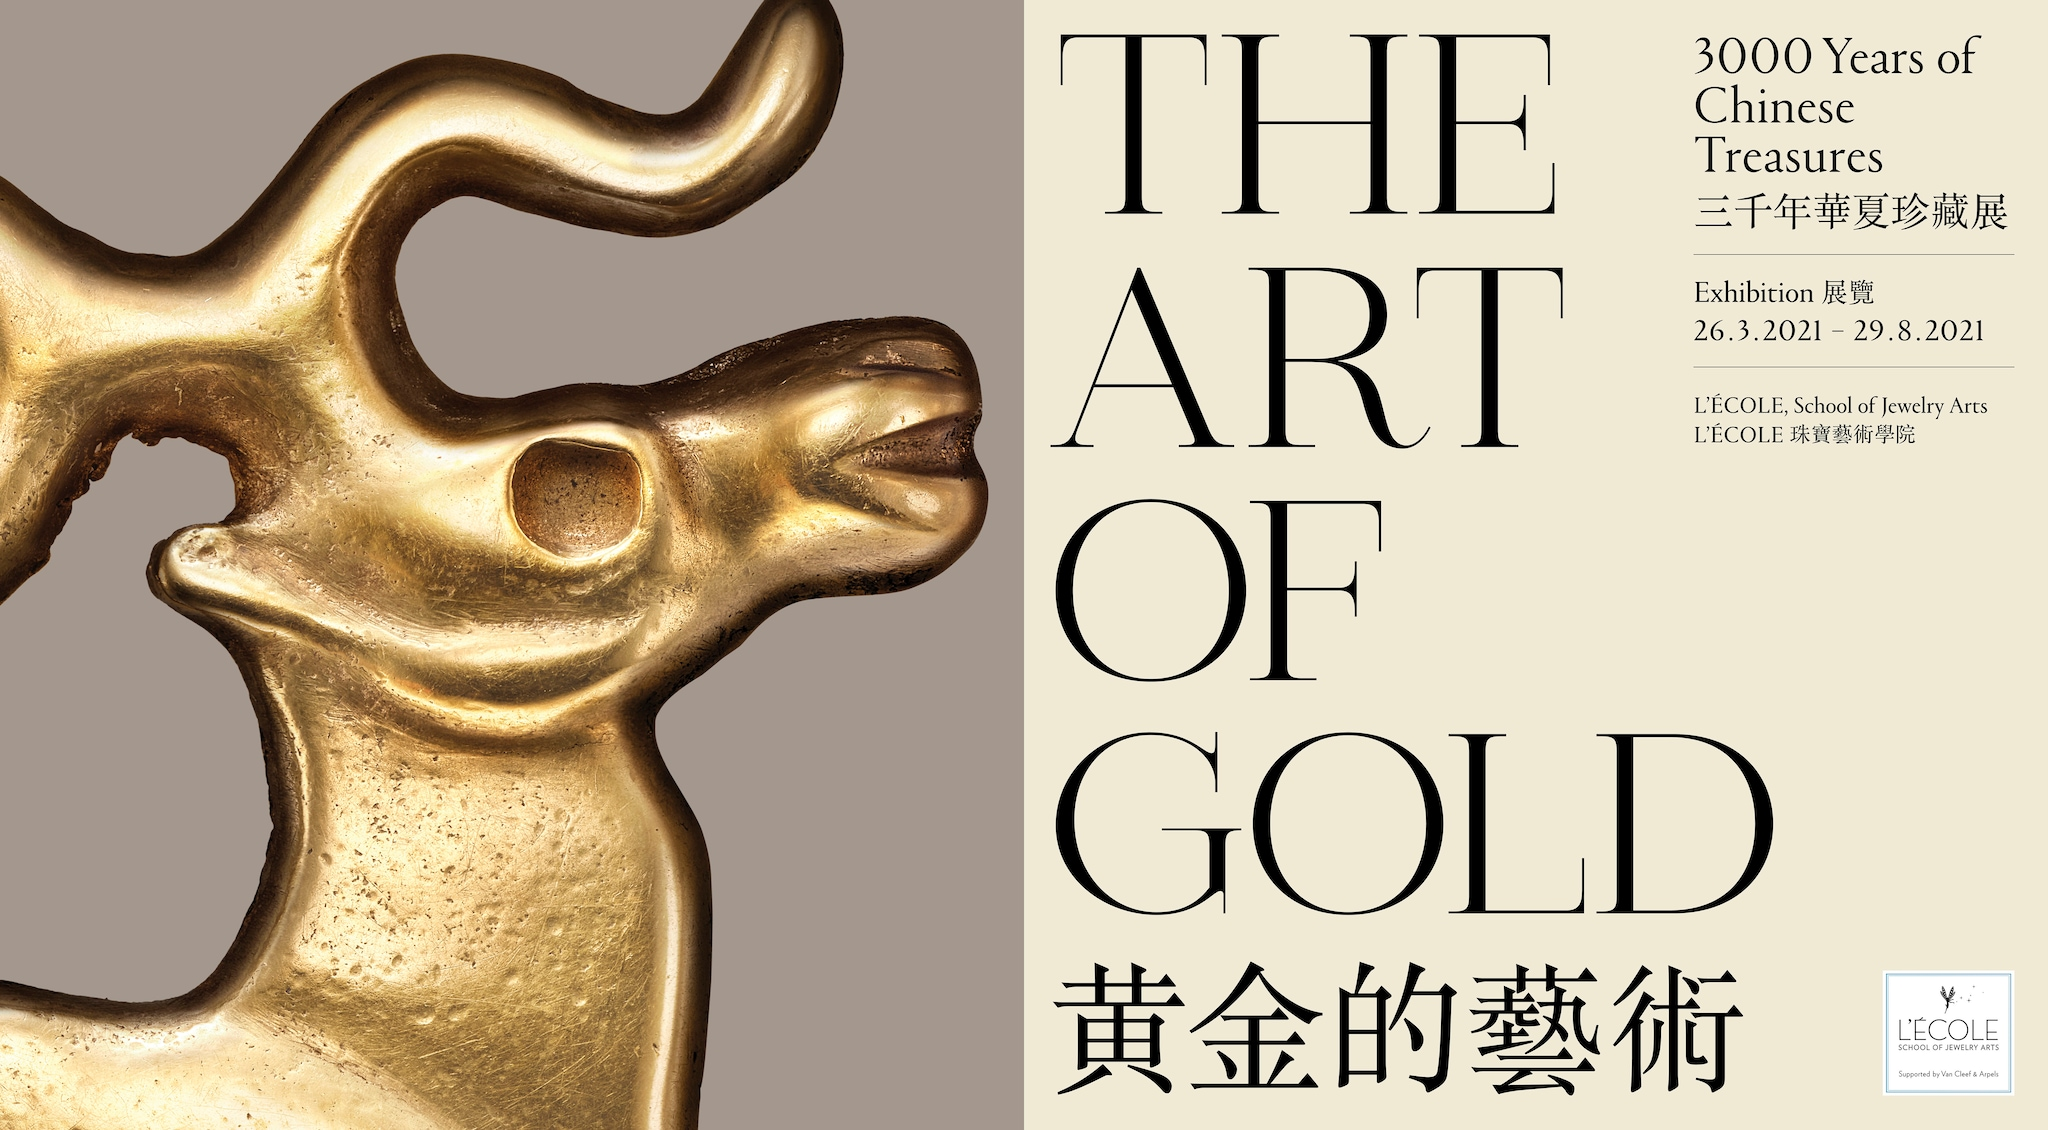 The Art of Gold